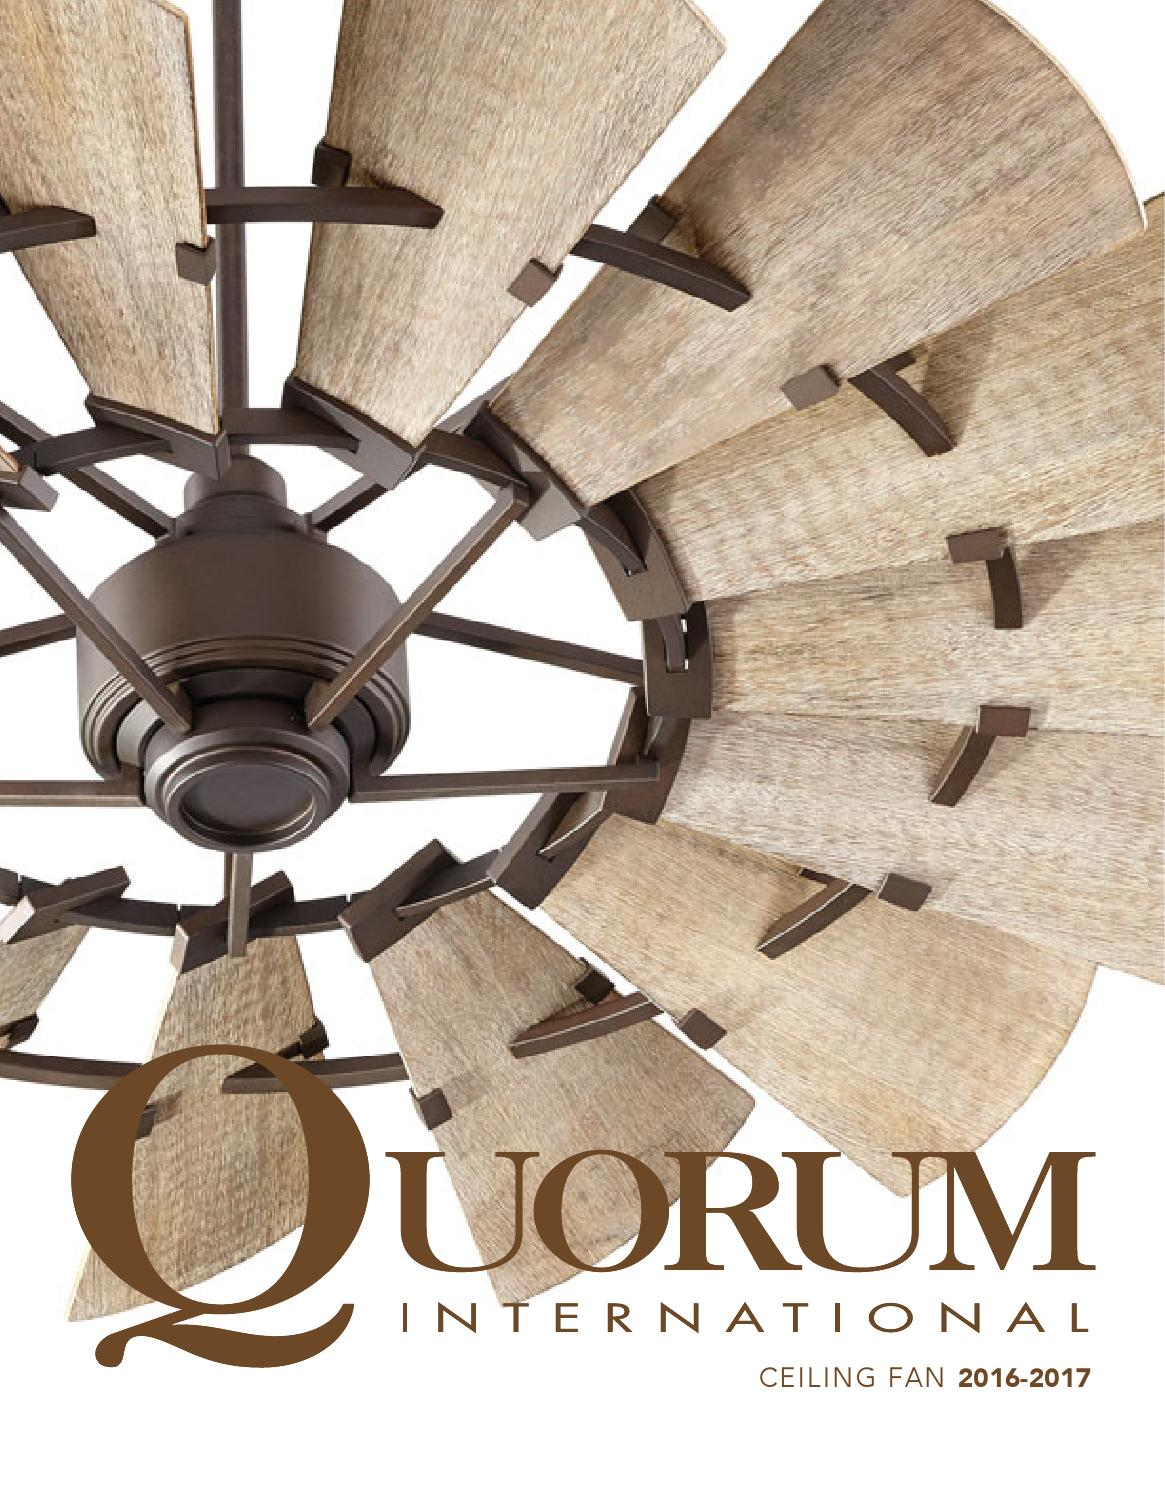 Large Indoor Fans Quorum Ceiling Fans 2016 Indoor Ceiling Fans 2016 Fans By Tfg Issuu